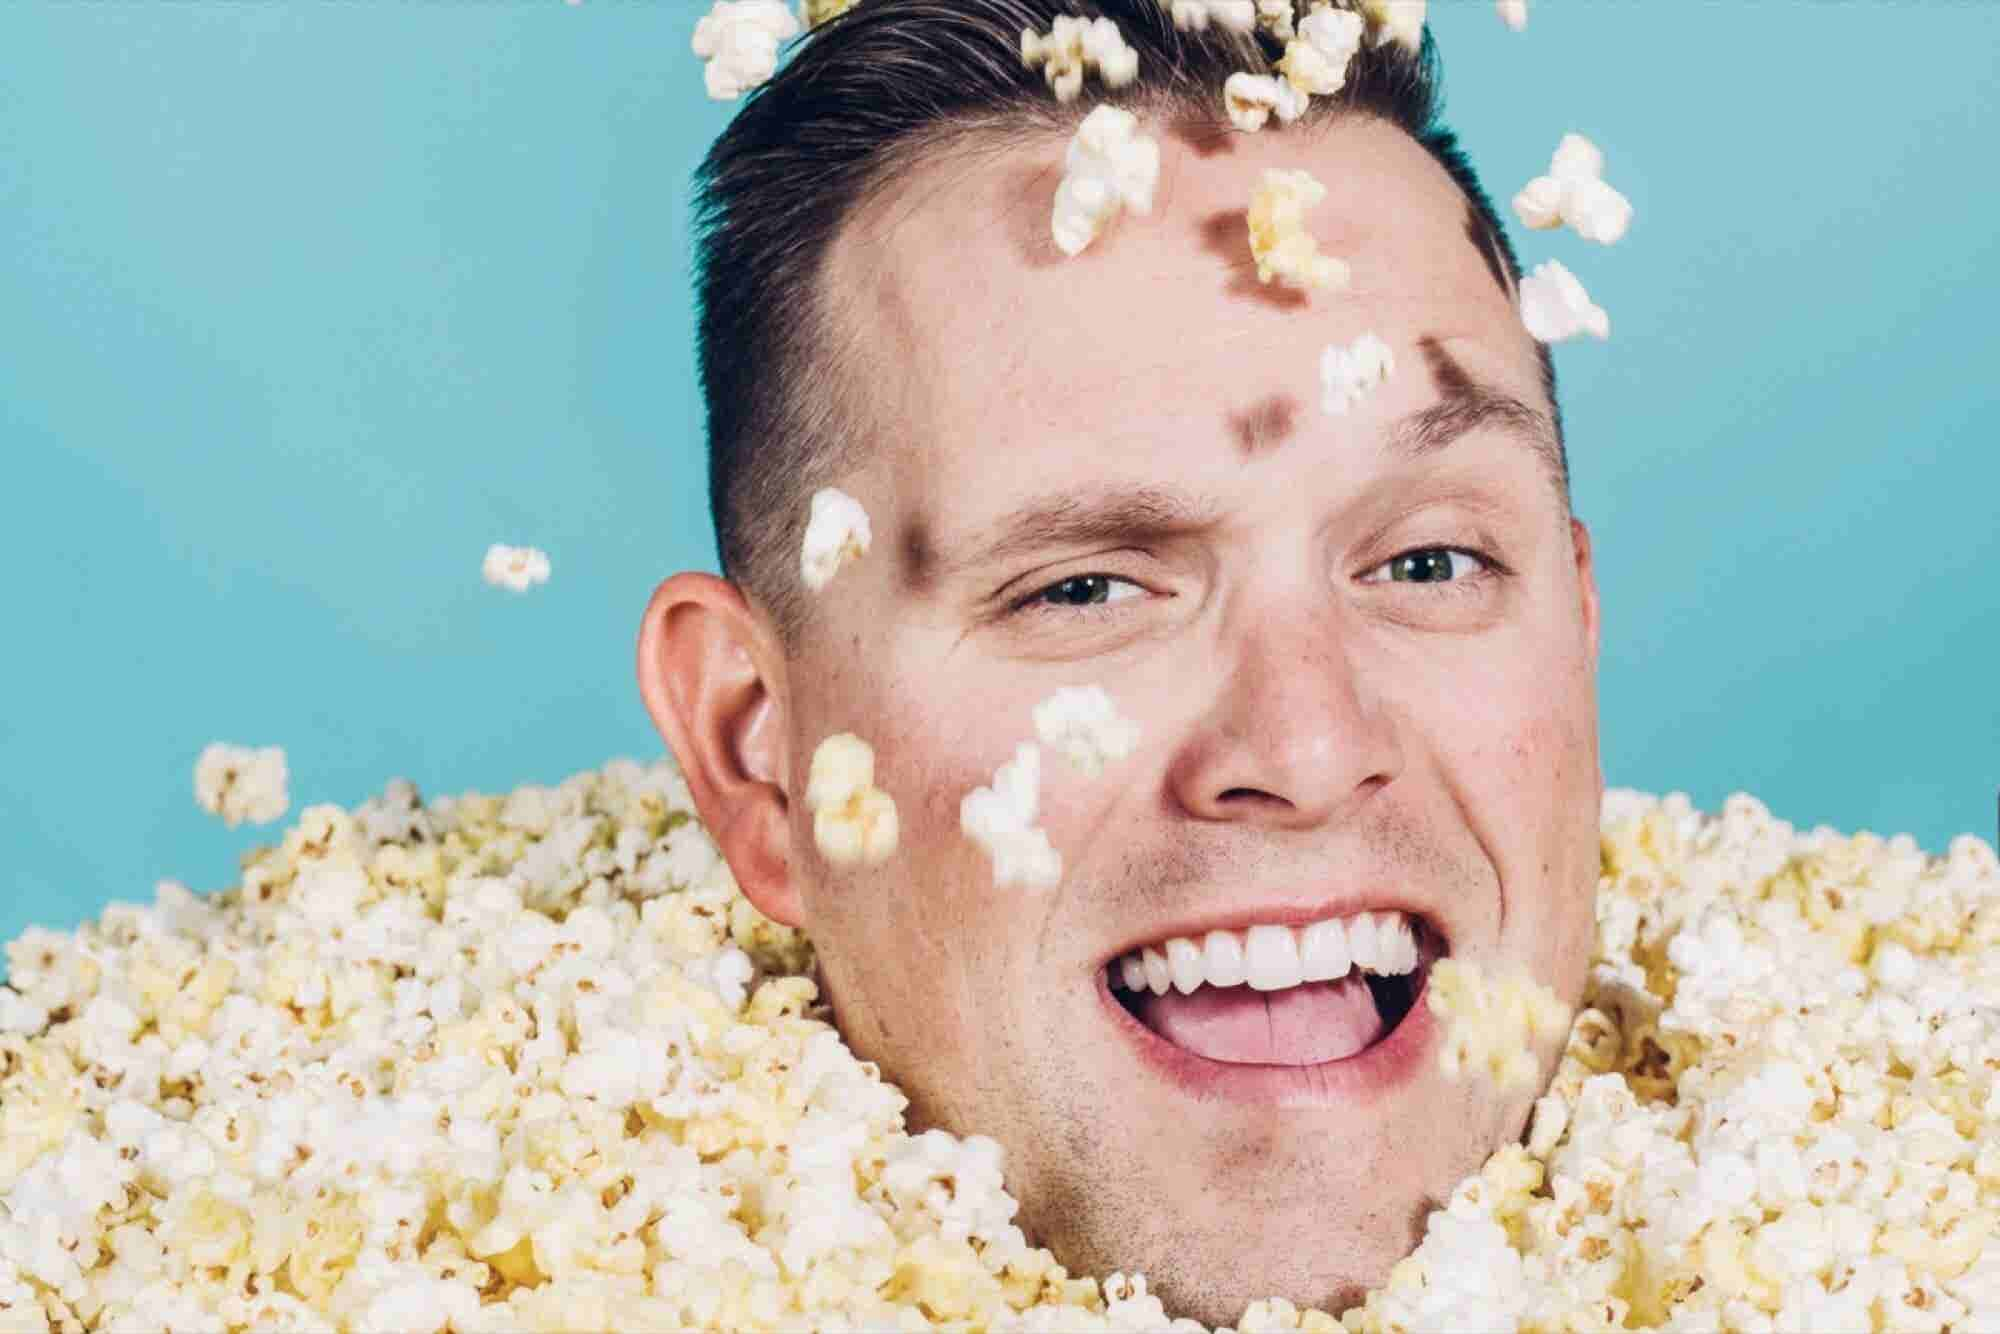 How an Obsessive Movie-Goer Reinvented the Theater's Favorite Food